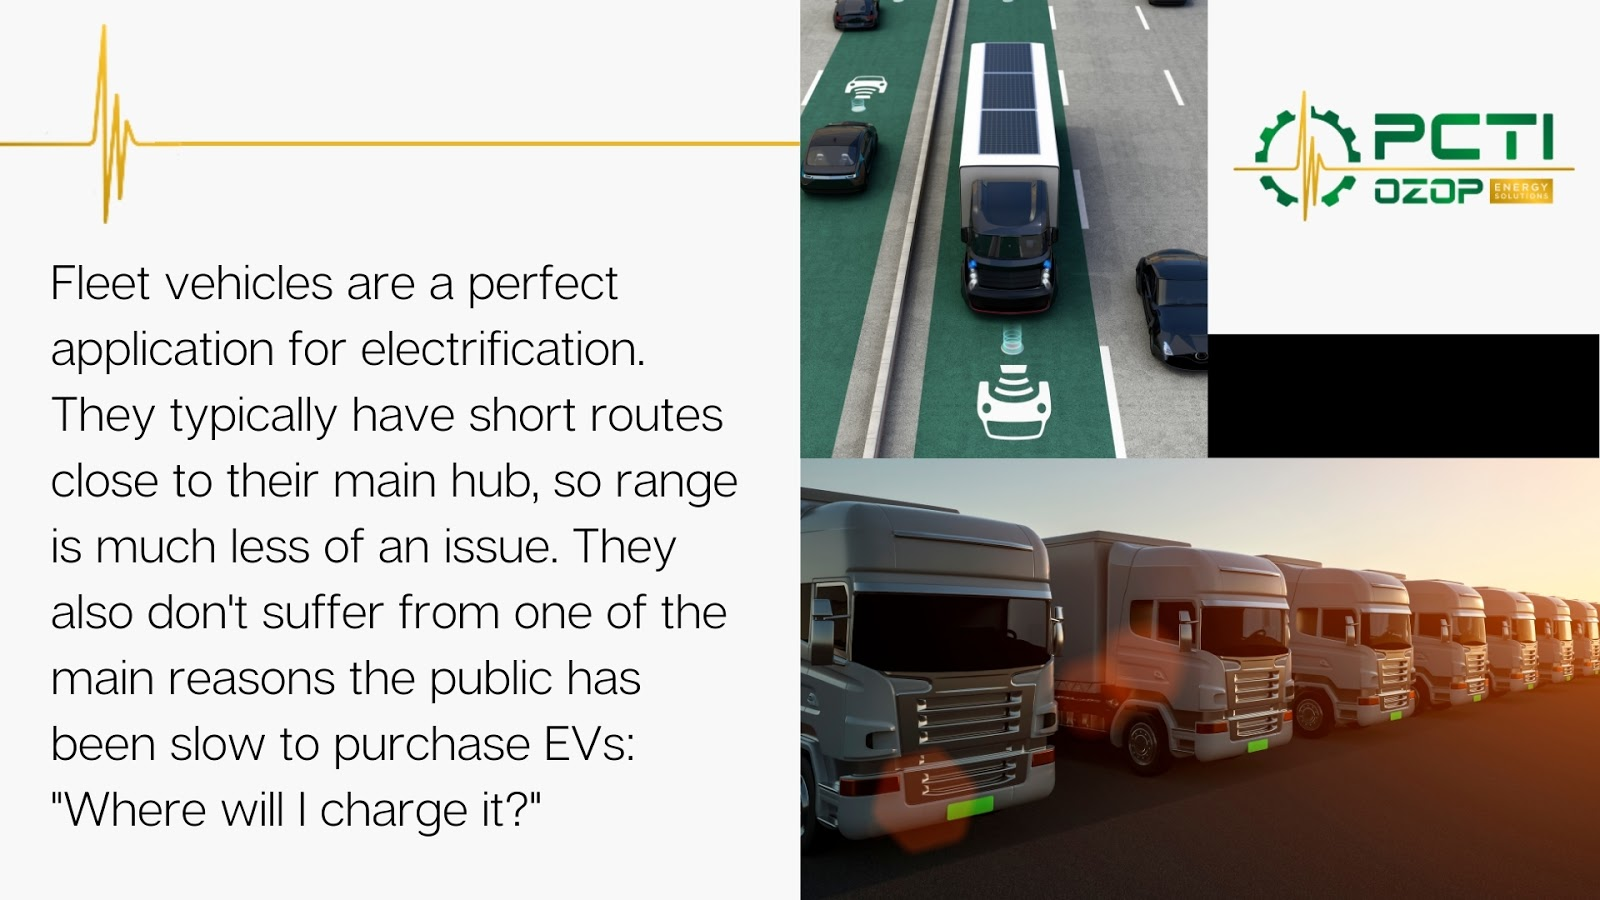 Fleet vehicles are a perfect application for electrification. They have short routes close to their main hub, so range is less of an issue